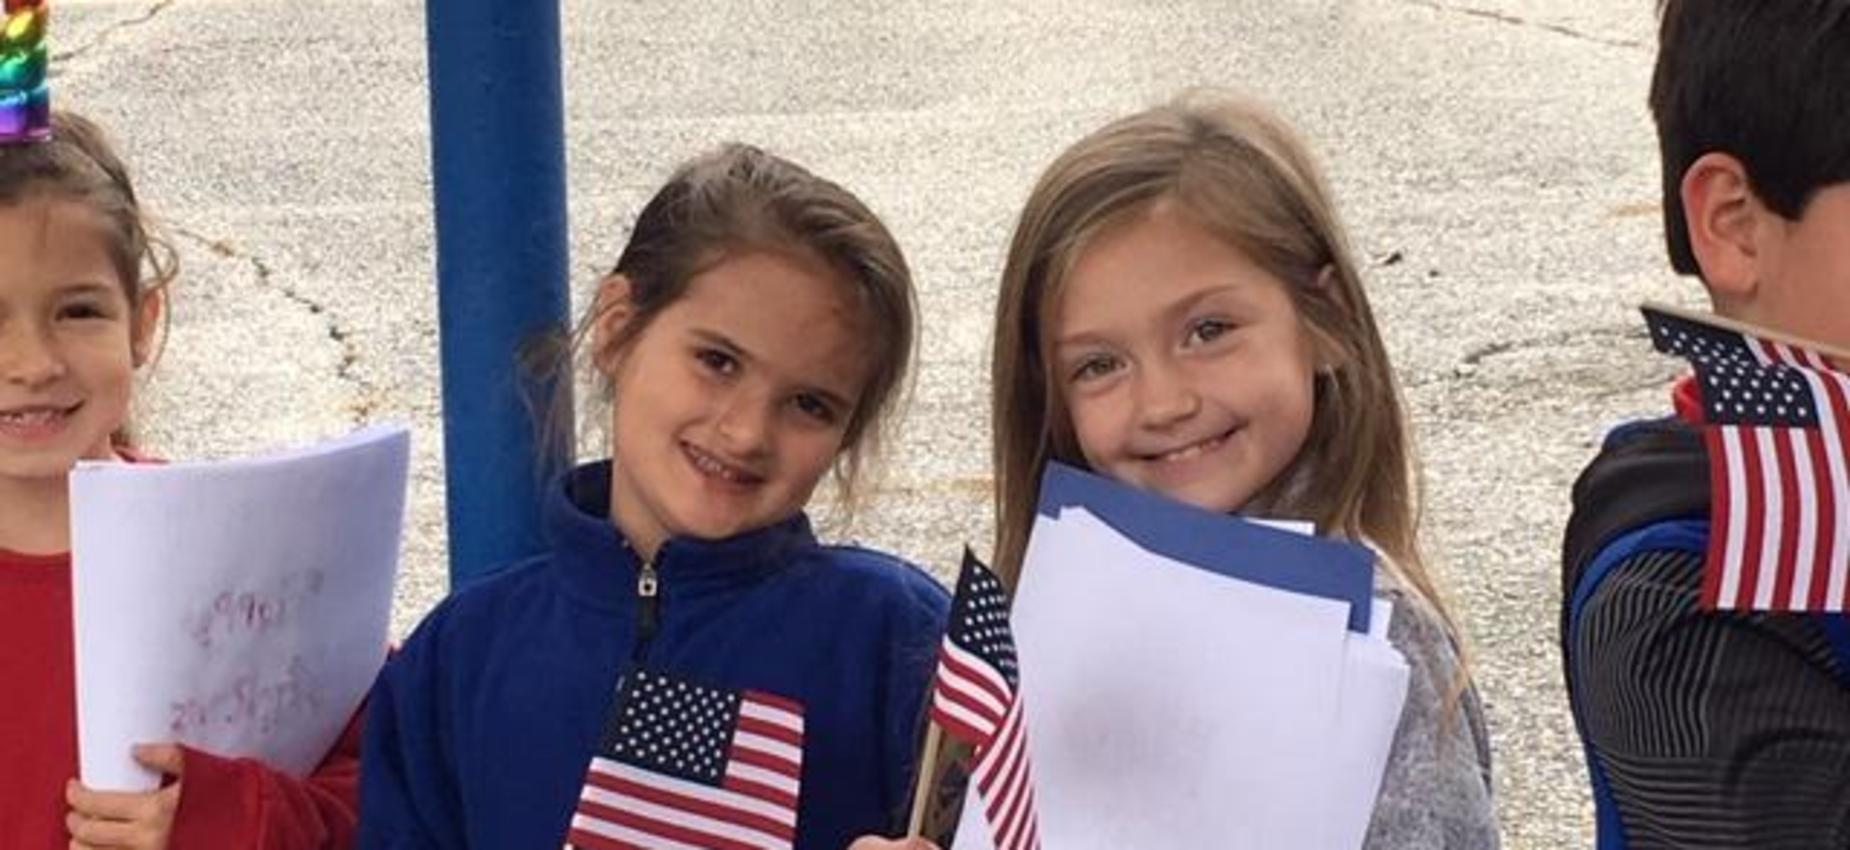 Second grade students holding cards and American flags